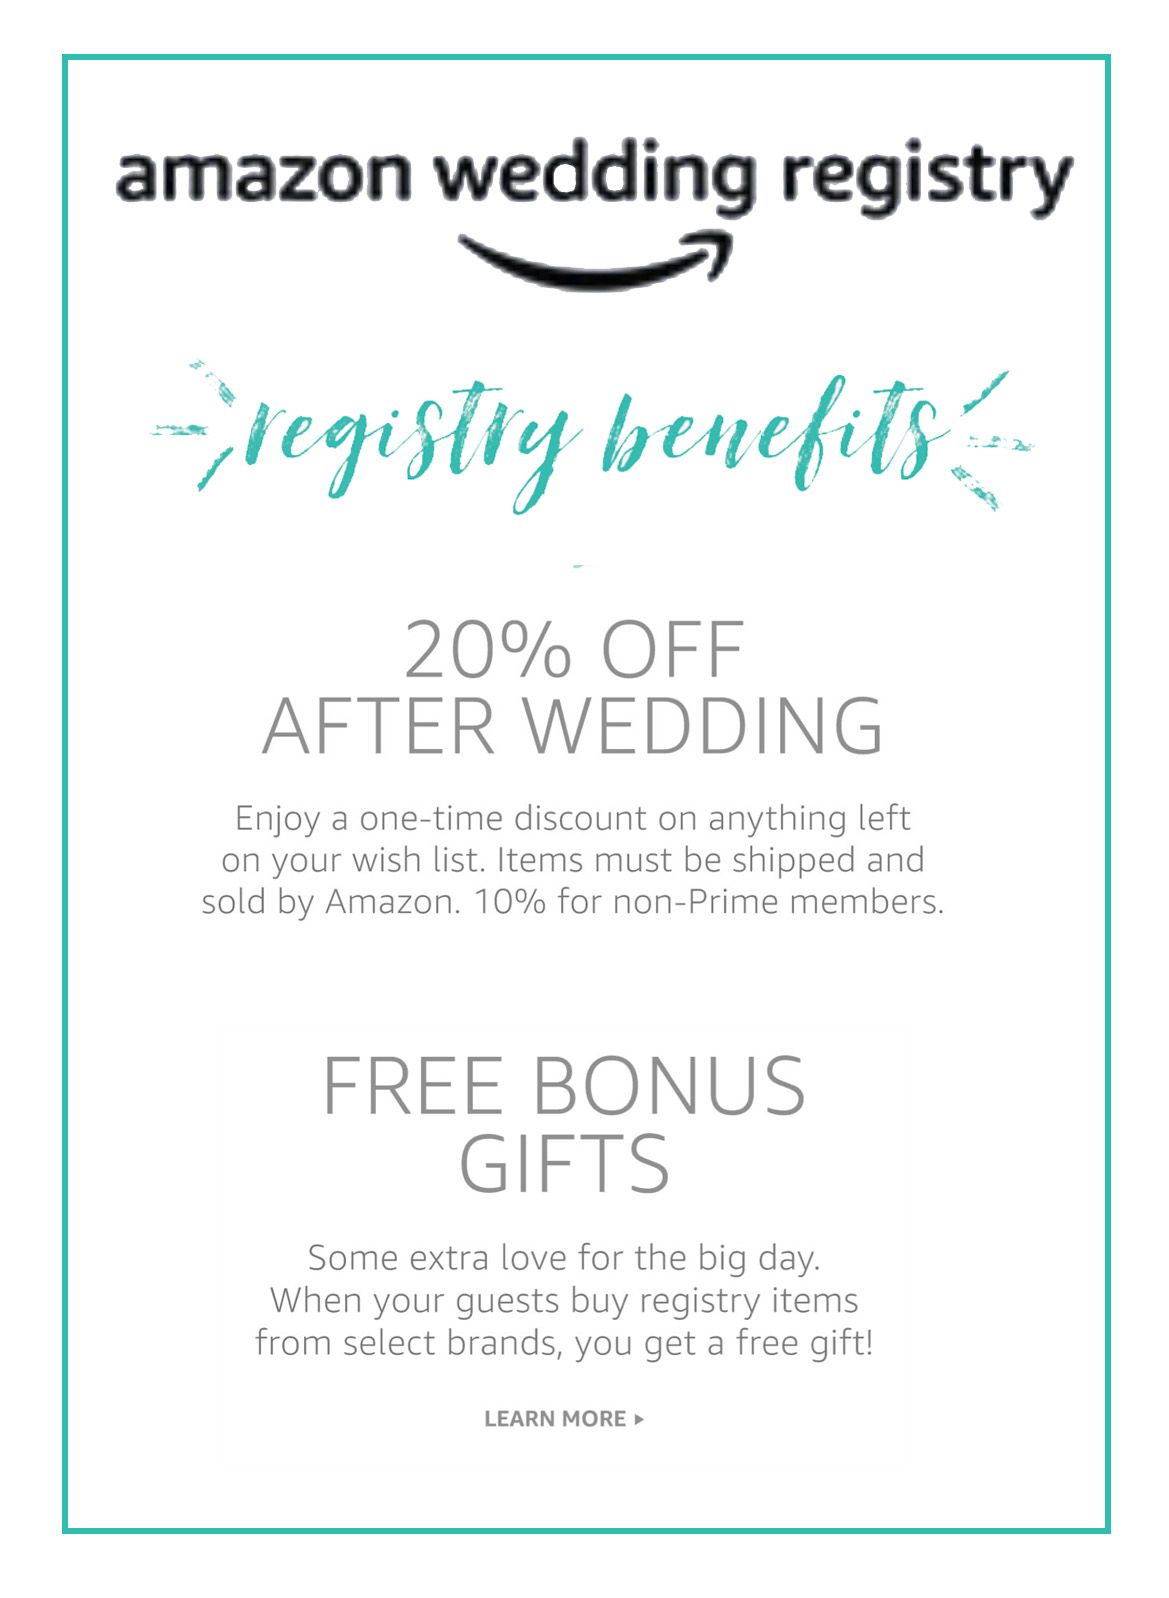 Amazon Wedding Registry Wedding Registry Deals Best Wedding Registry Wedding Registry Idea W In 2020 Amazon Wedding Registry Wedding Registry Best Wedding Registry